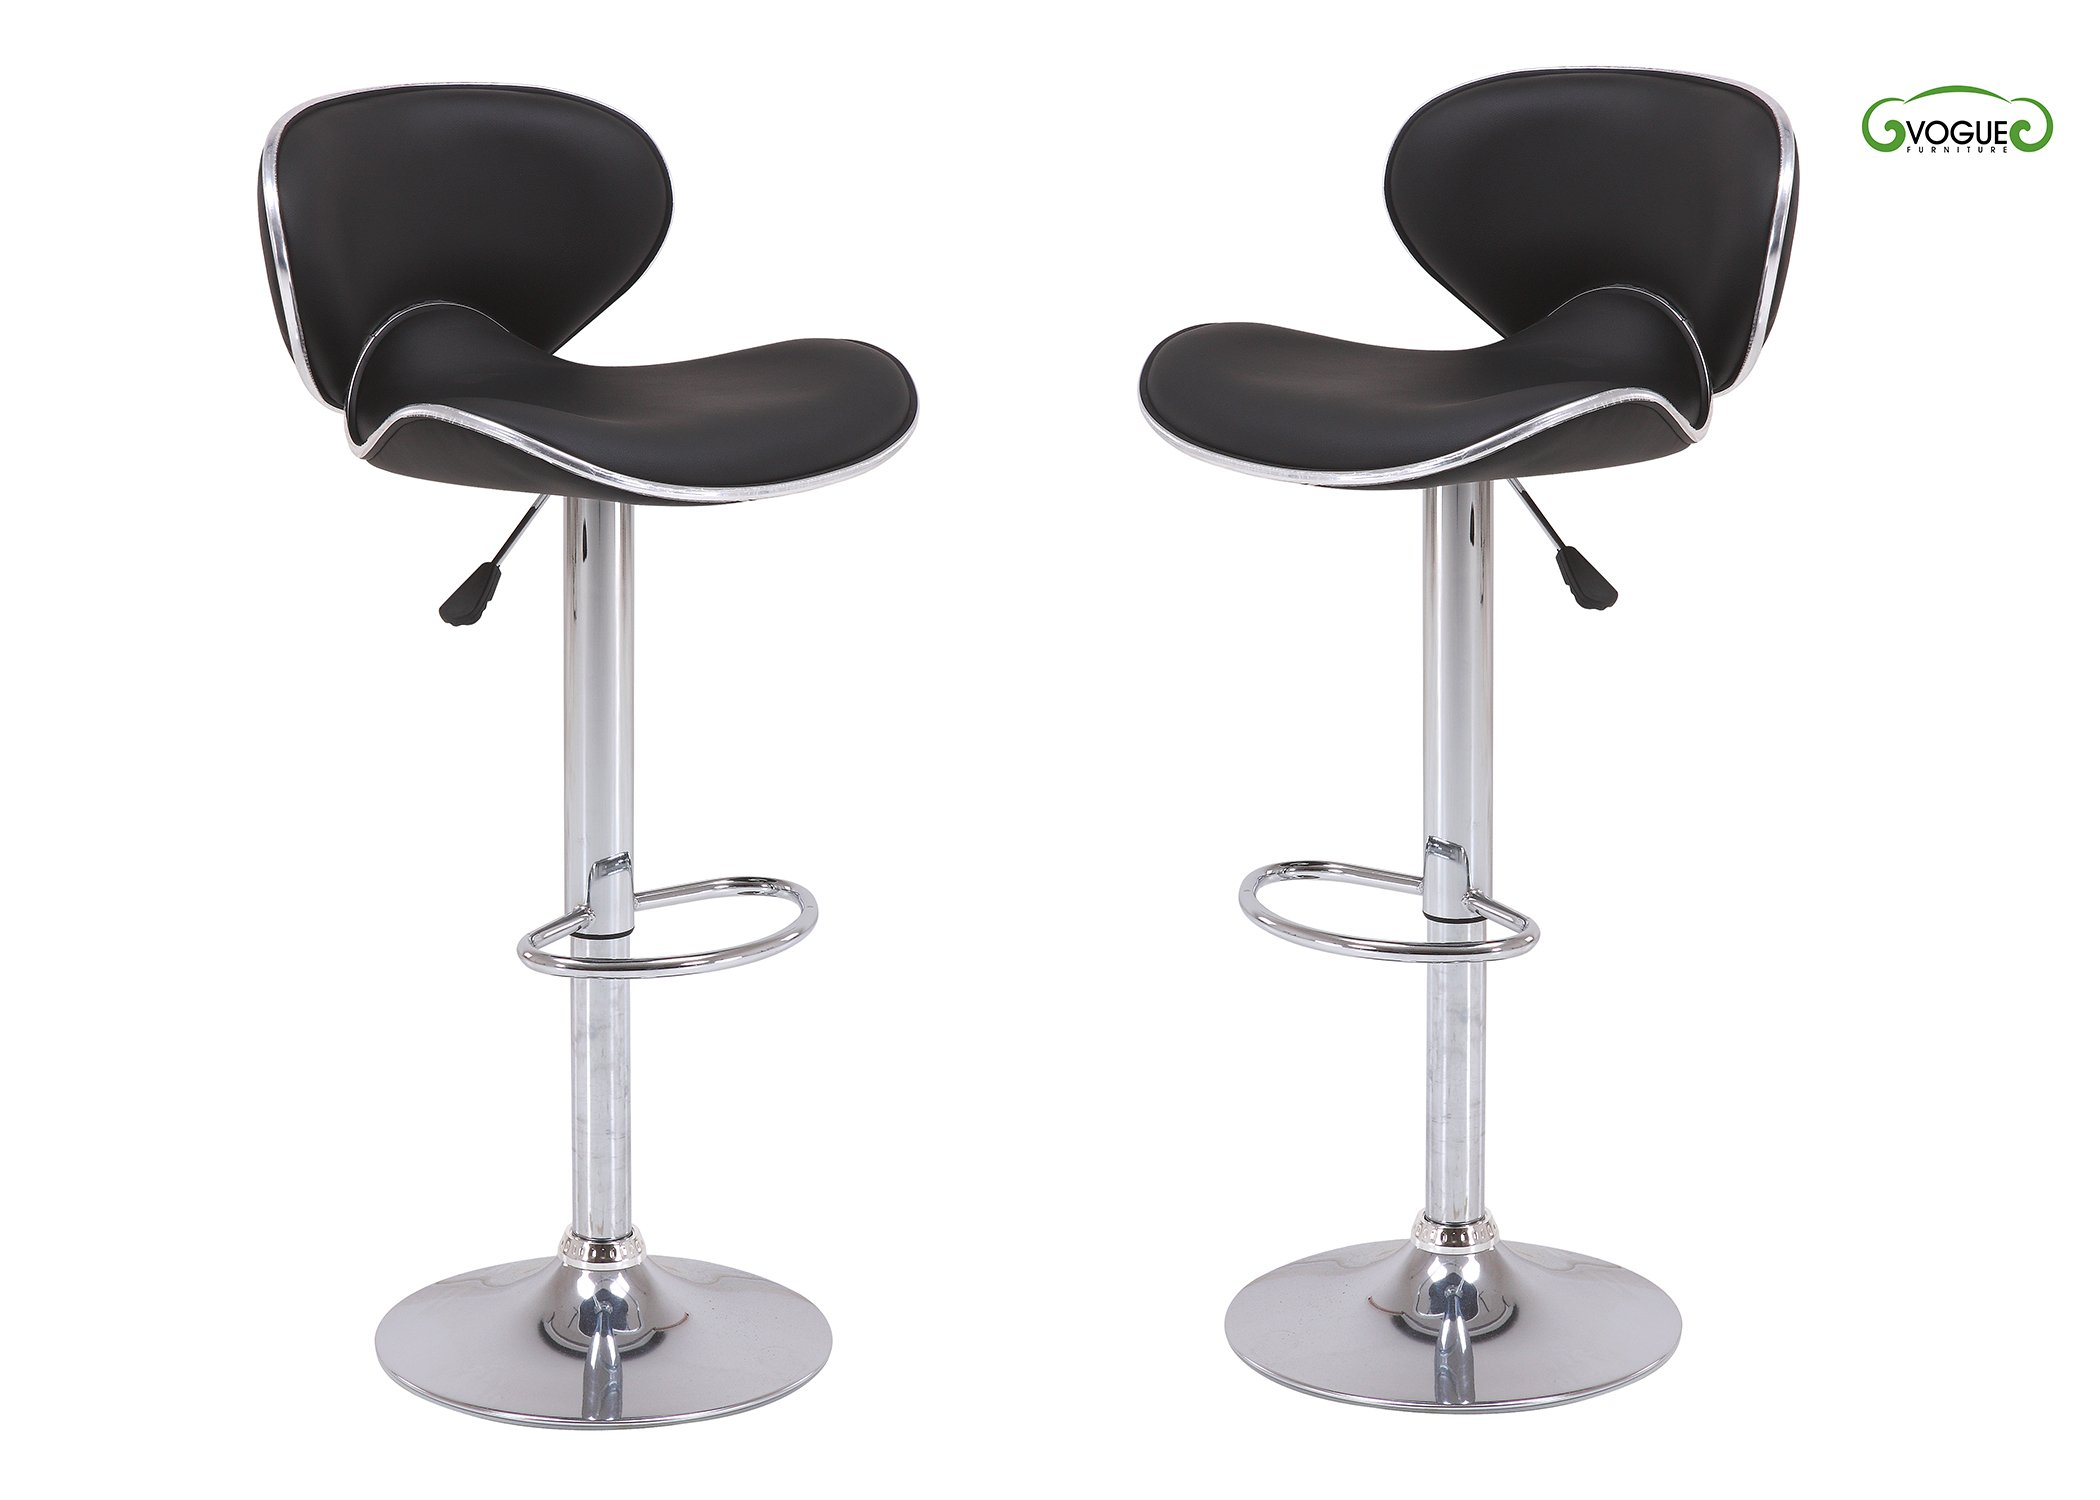 Vogue Furniture Direct VF1581046-2 Direct Adjustable Height Swivel Barstools with Footrest (Set of 2) Black